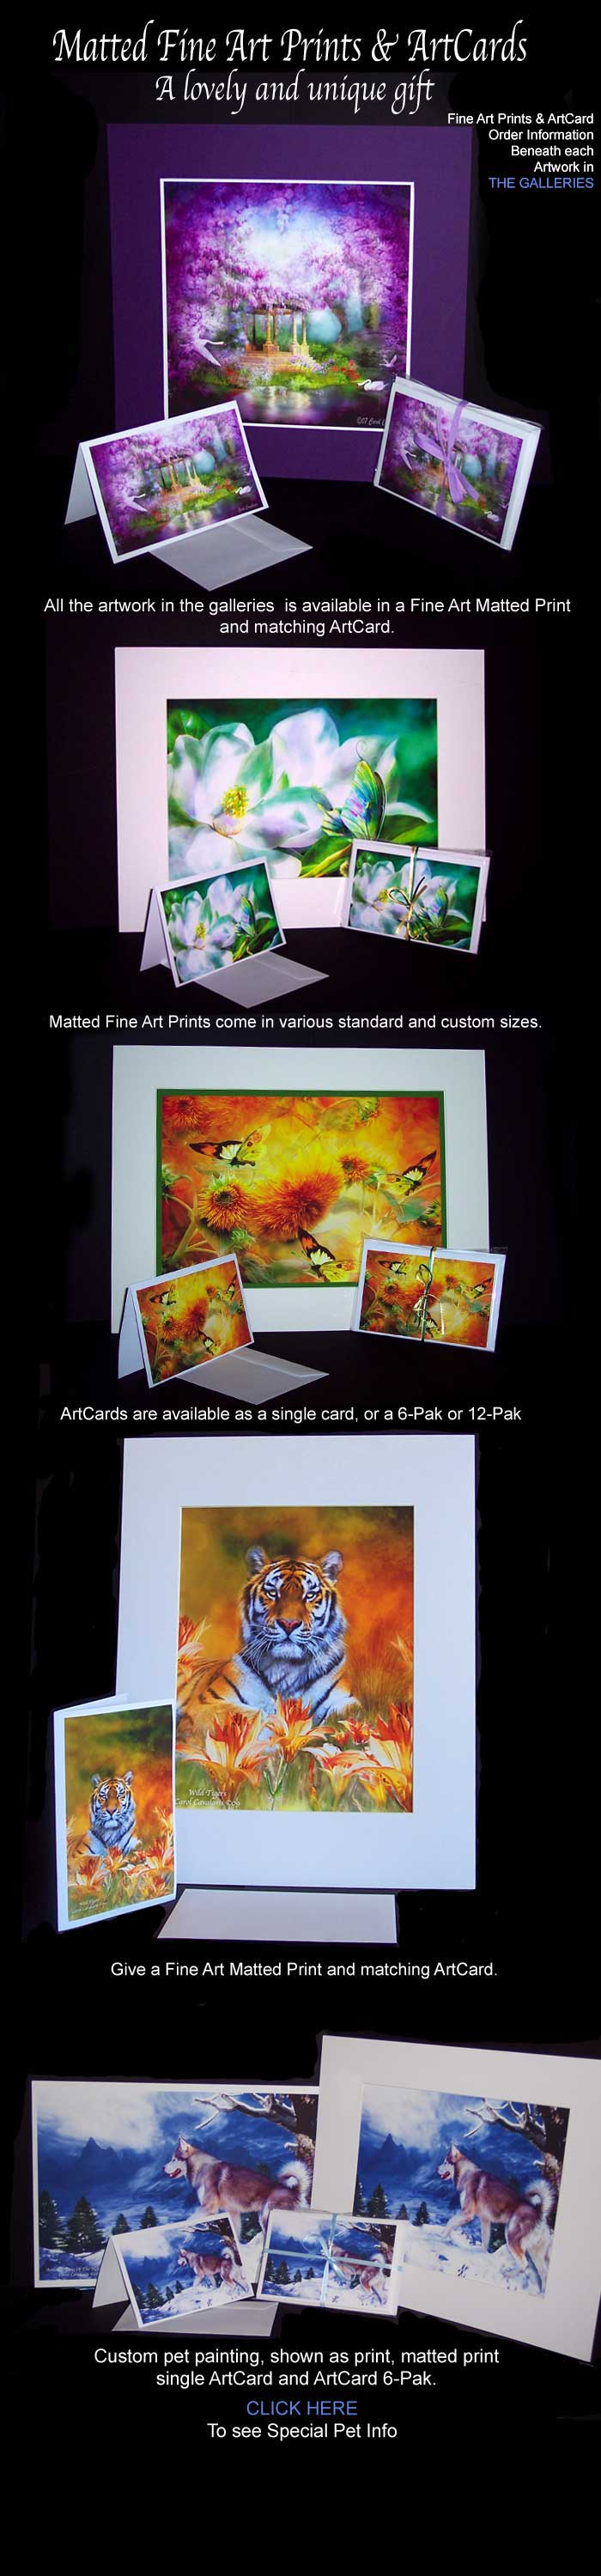 Matted Fine Art Prints